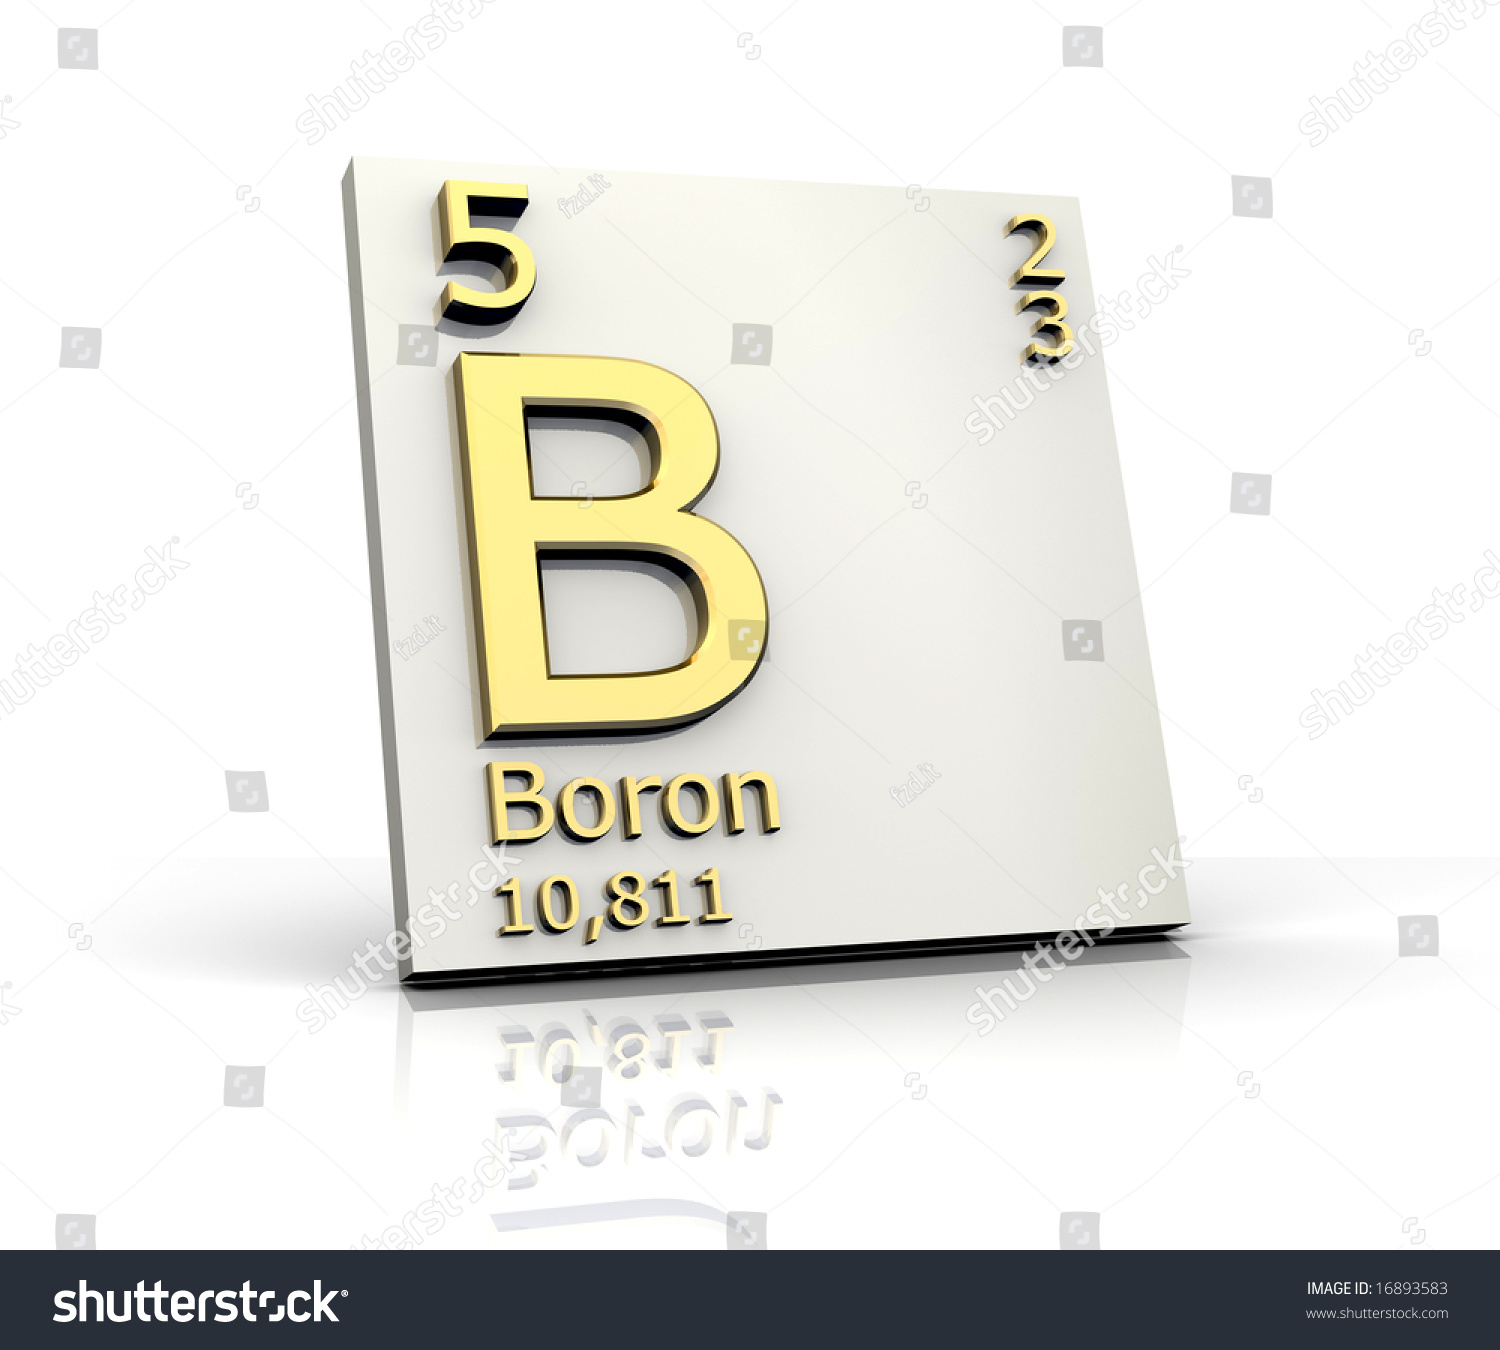 Boron periodic table elements stock illustration 16893583 boron from periodic table of elements buycottarizona